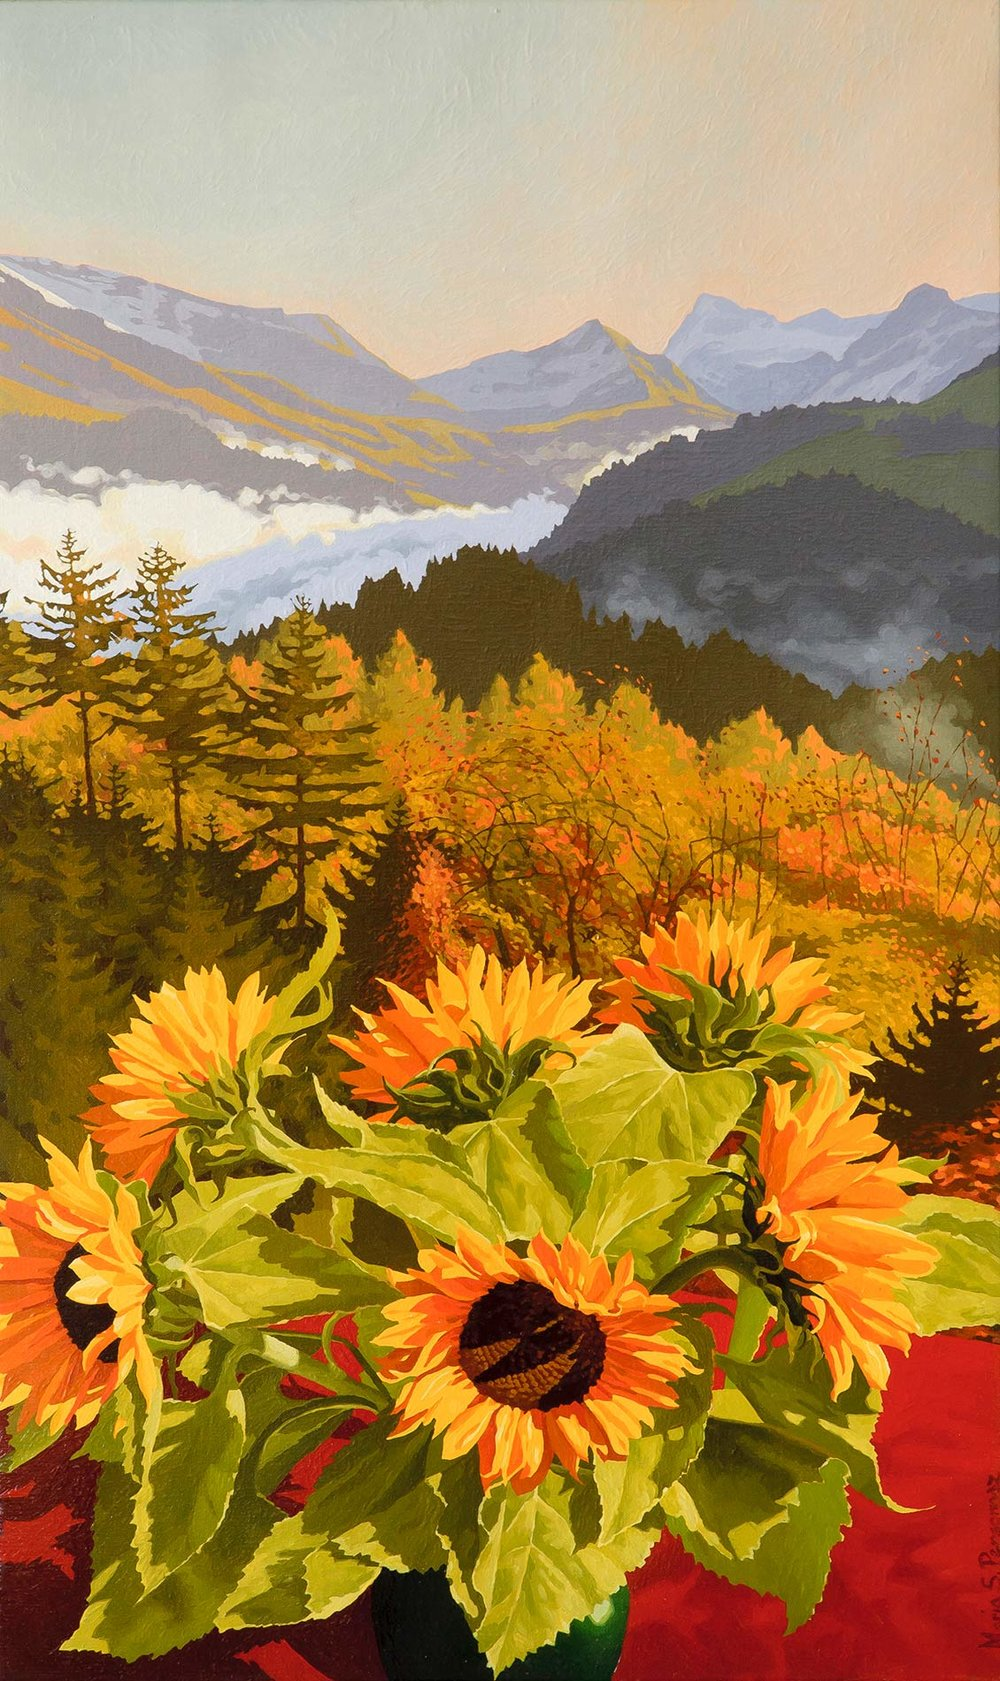 Sunflowers and a valley in the morning